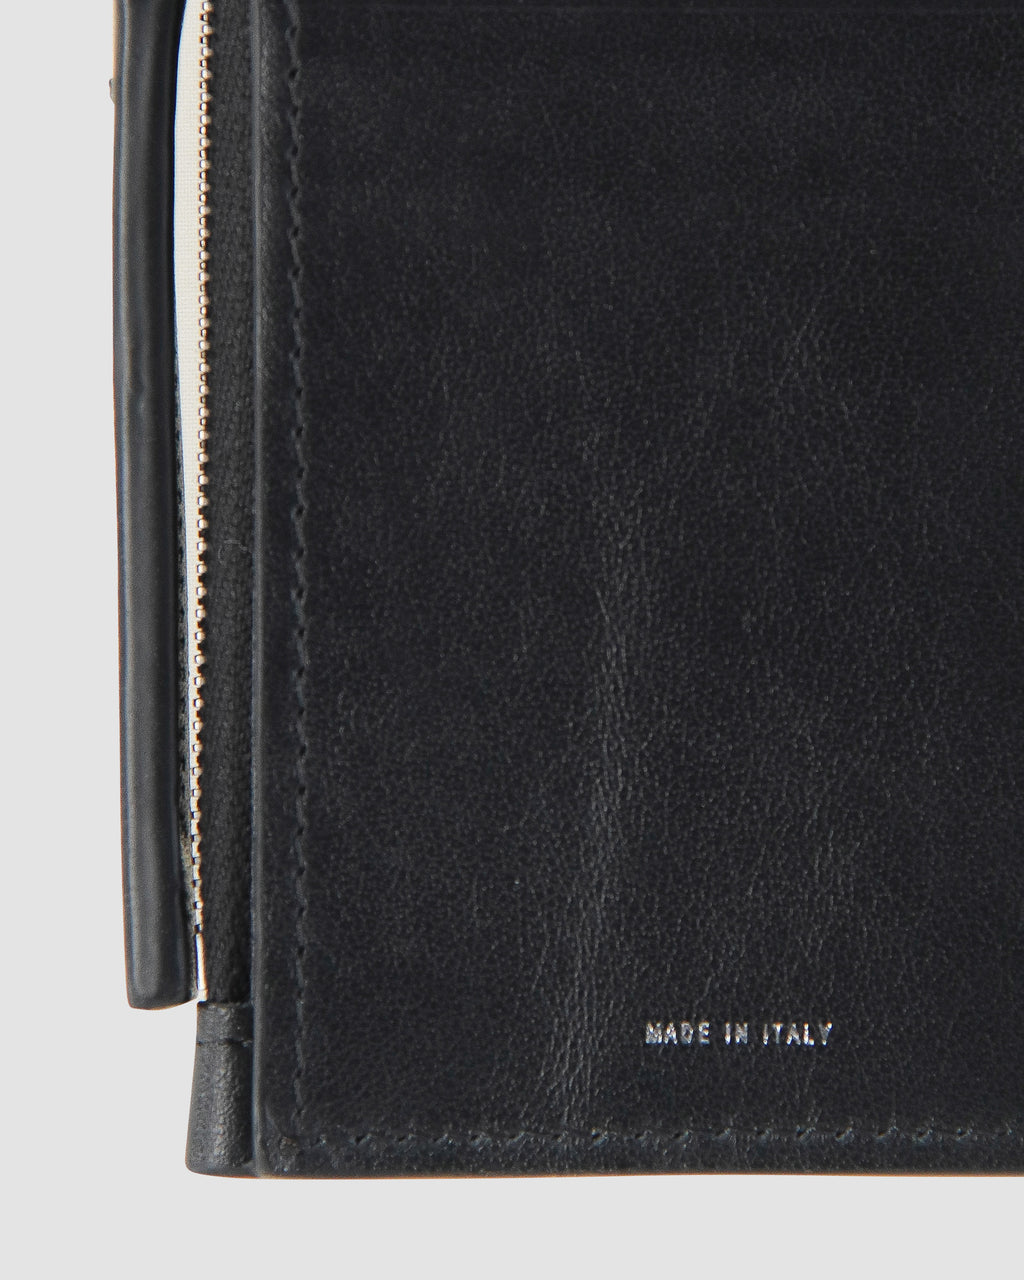 1017 ALYX 9SM | DANI WALLET | Wallet | Accessories, Black, CO, Man, Woman